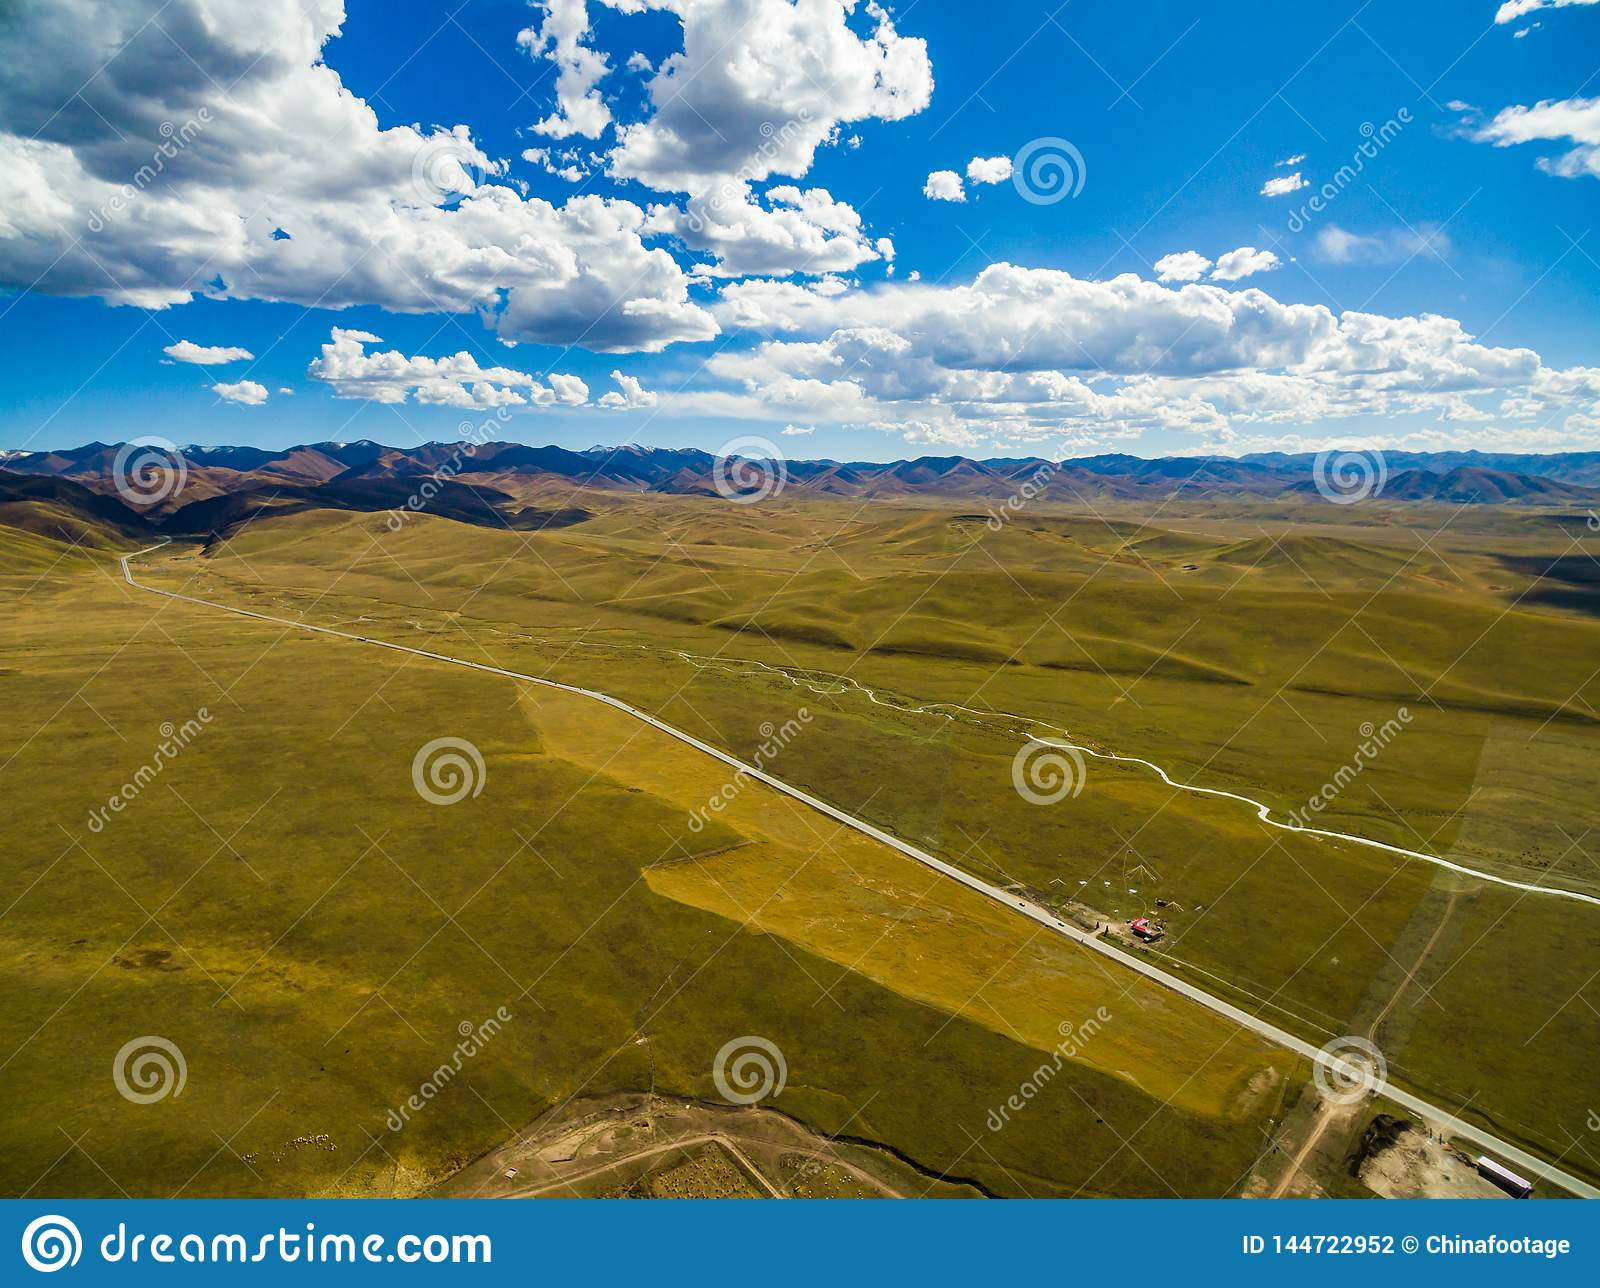 Aerial view of blue sky and white clouds in Gannan, Gansu, China